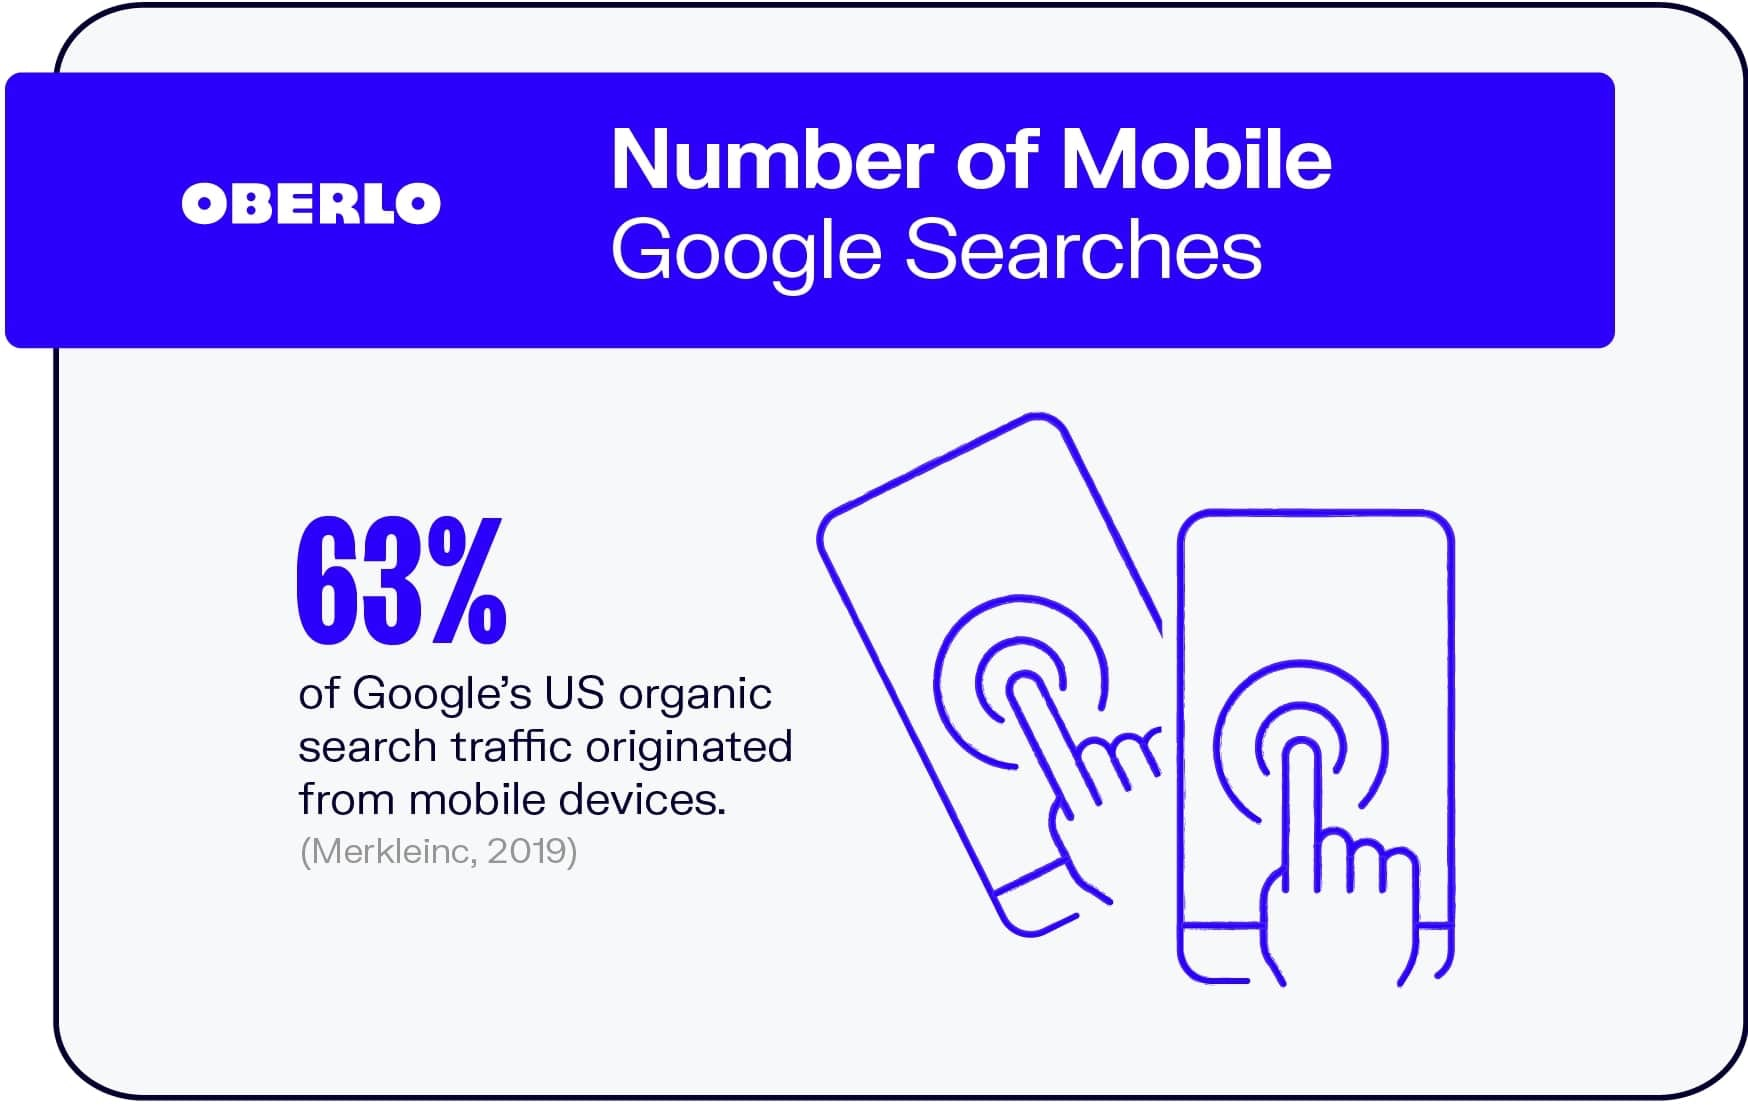 Number of Mobile Google Searches